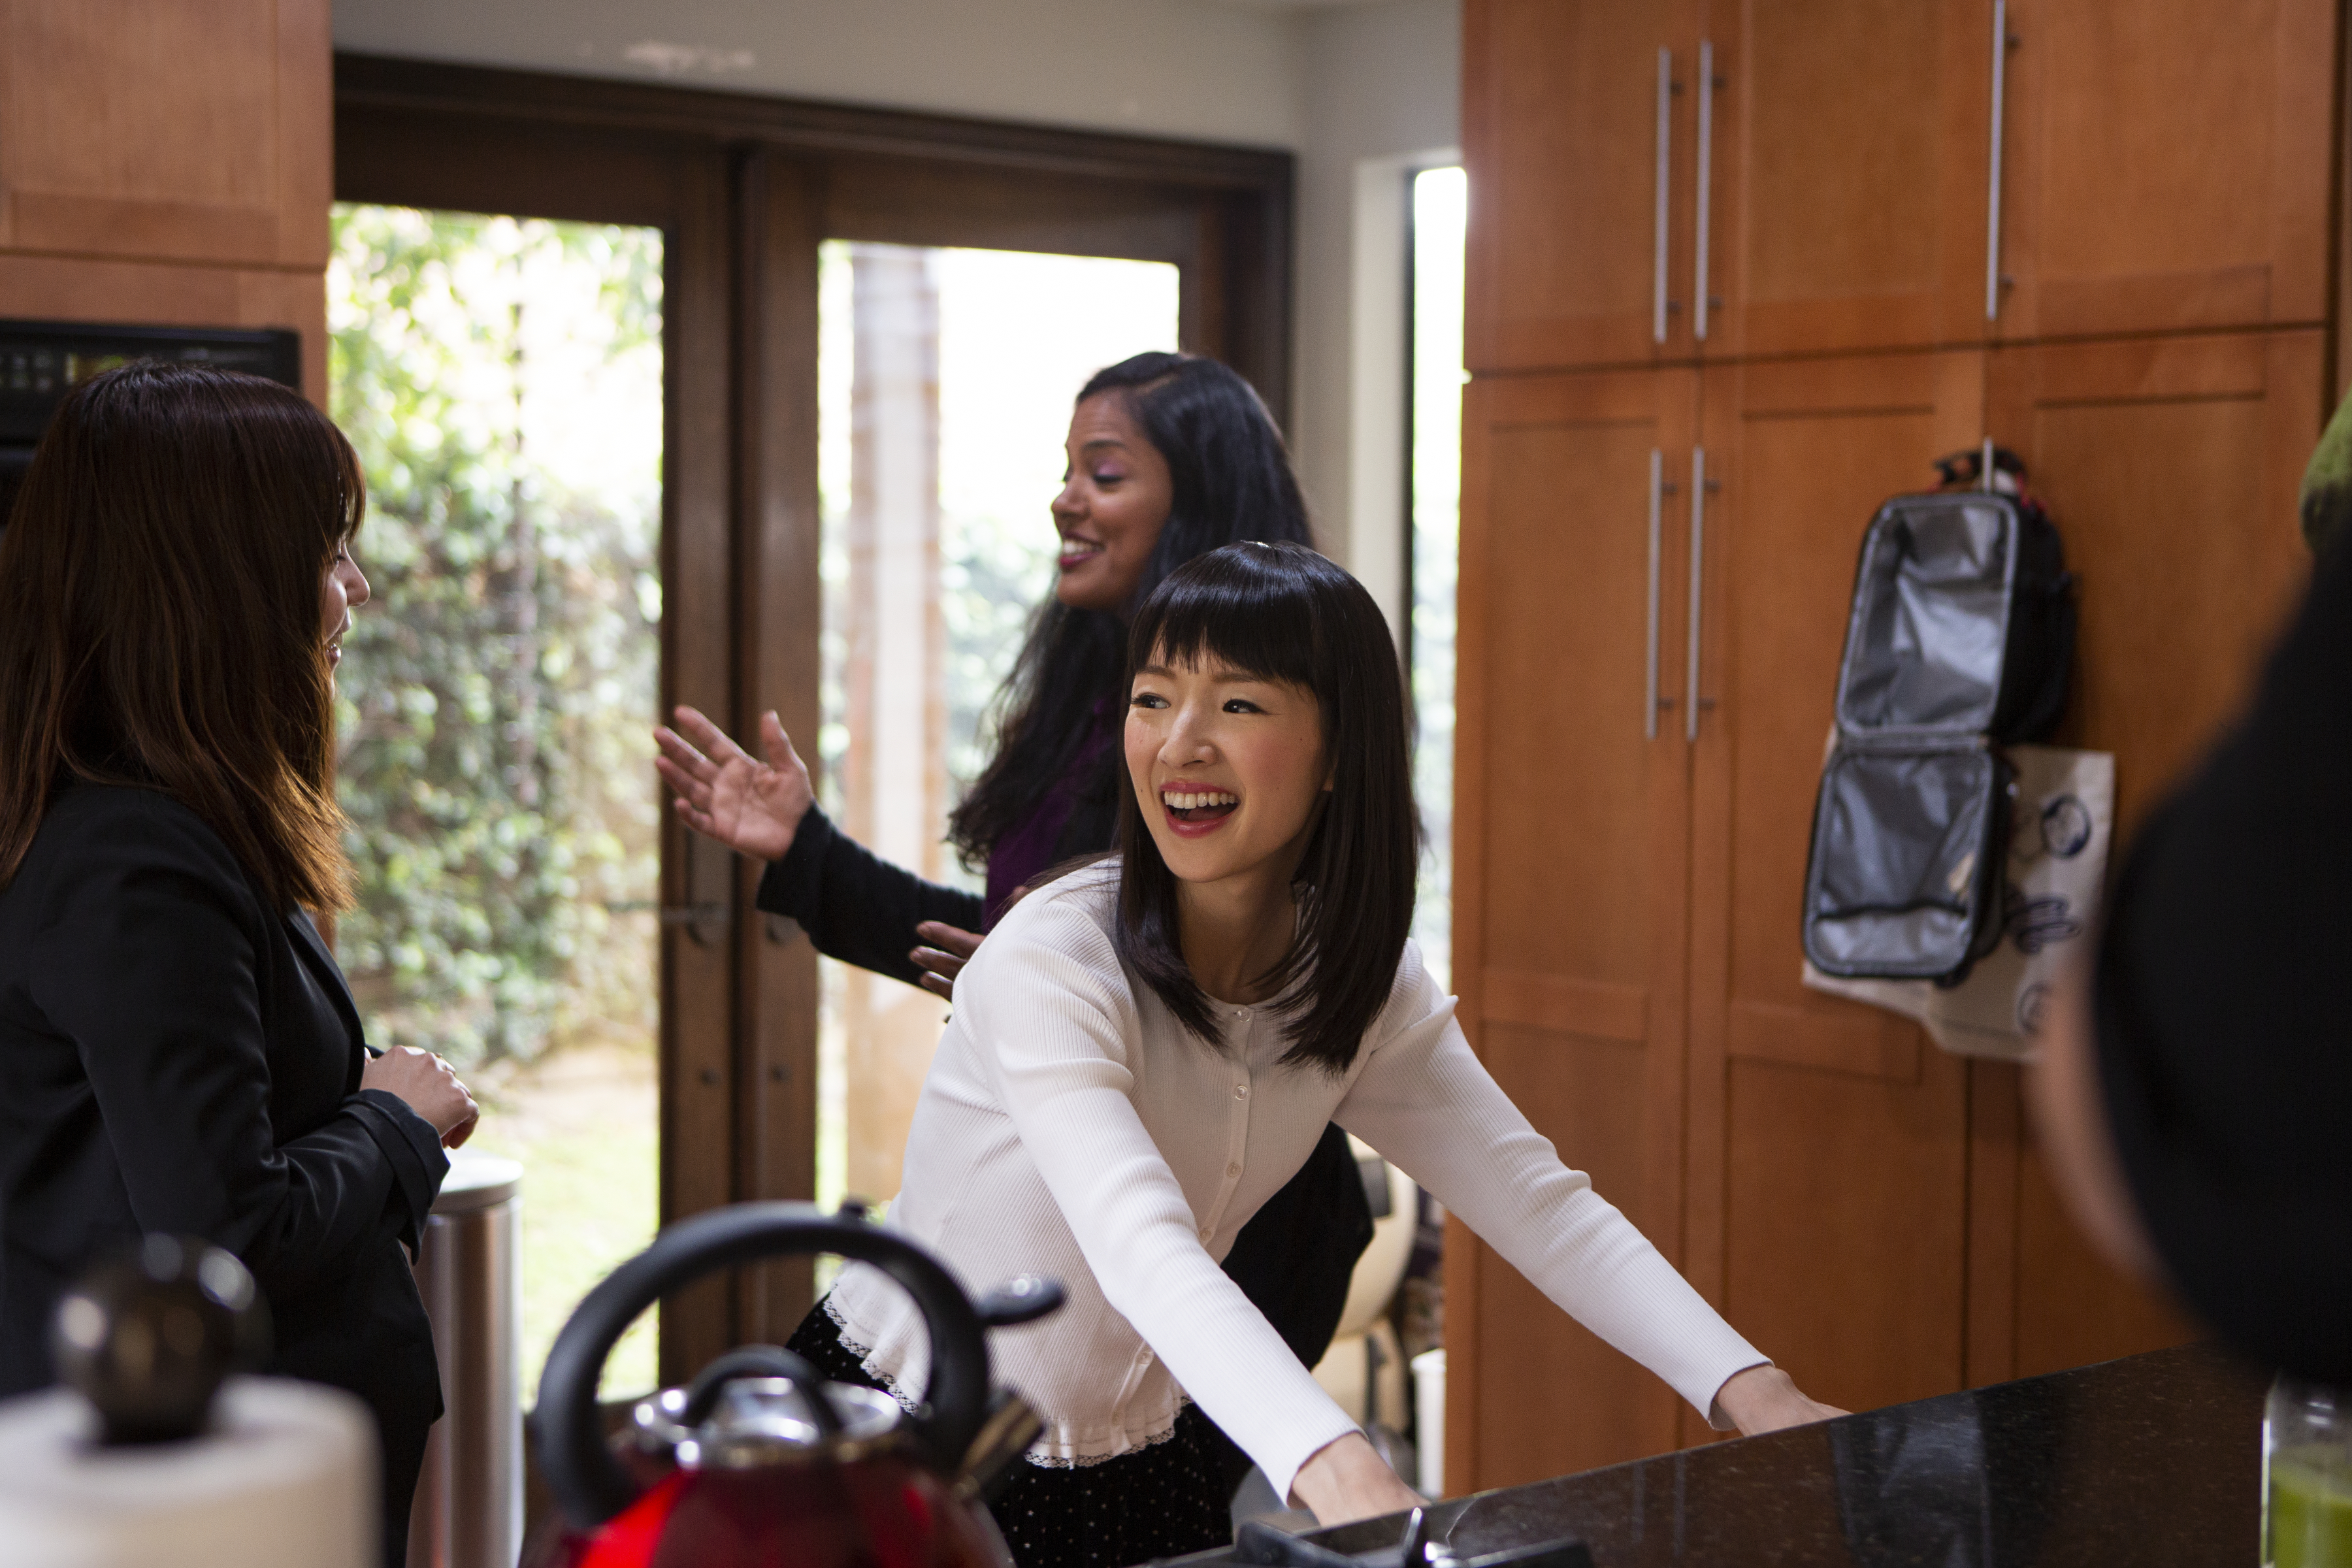 Book lovers, relax: Marie Kondo is not coming for your books